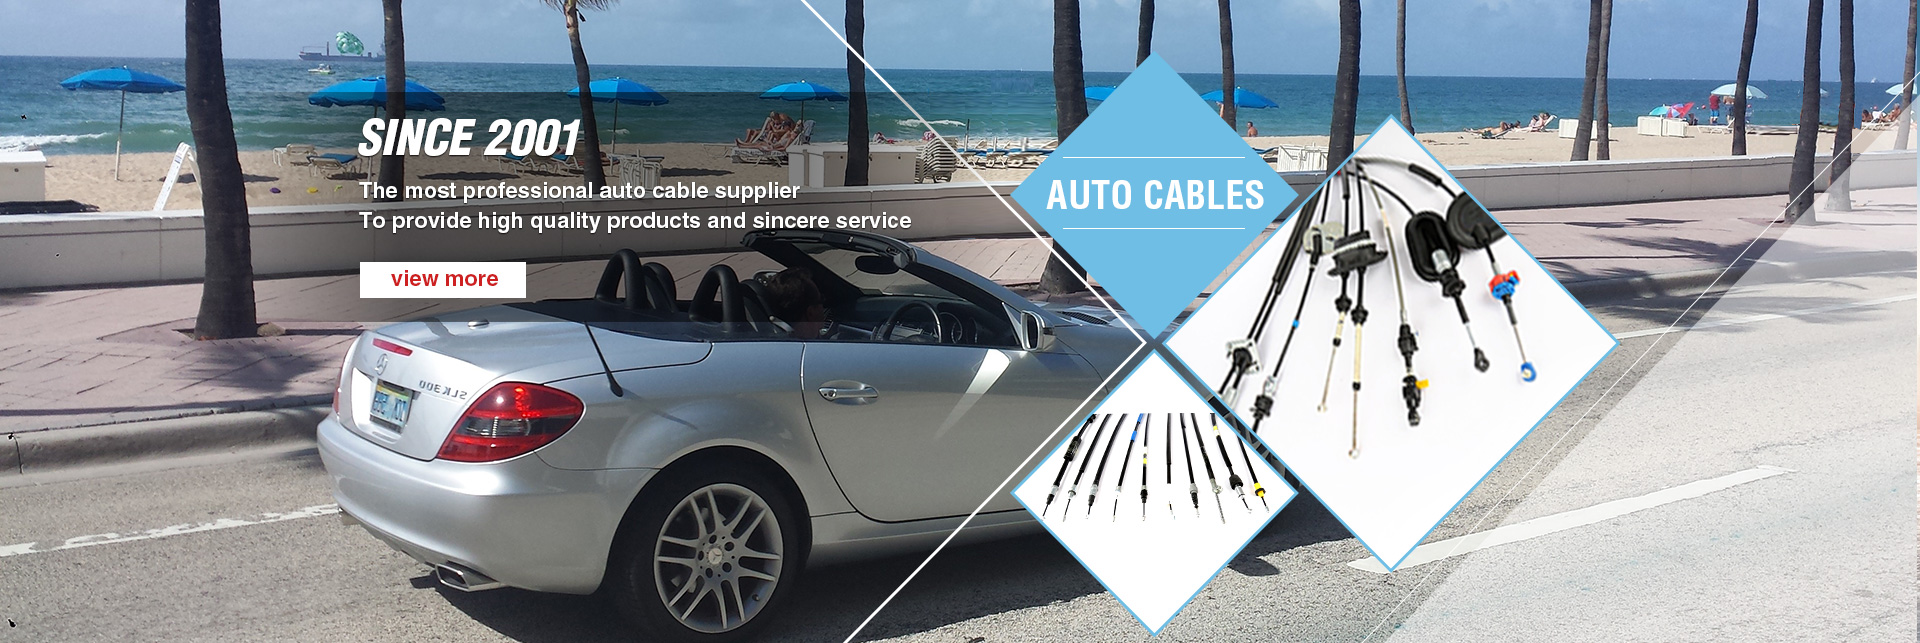 Professional Auto Cable Supplier